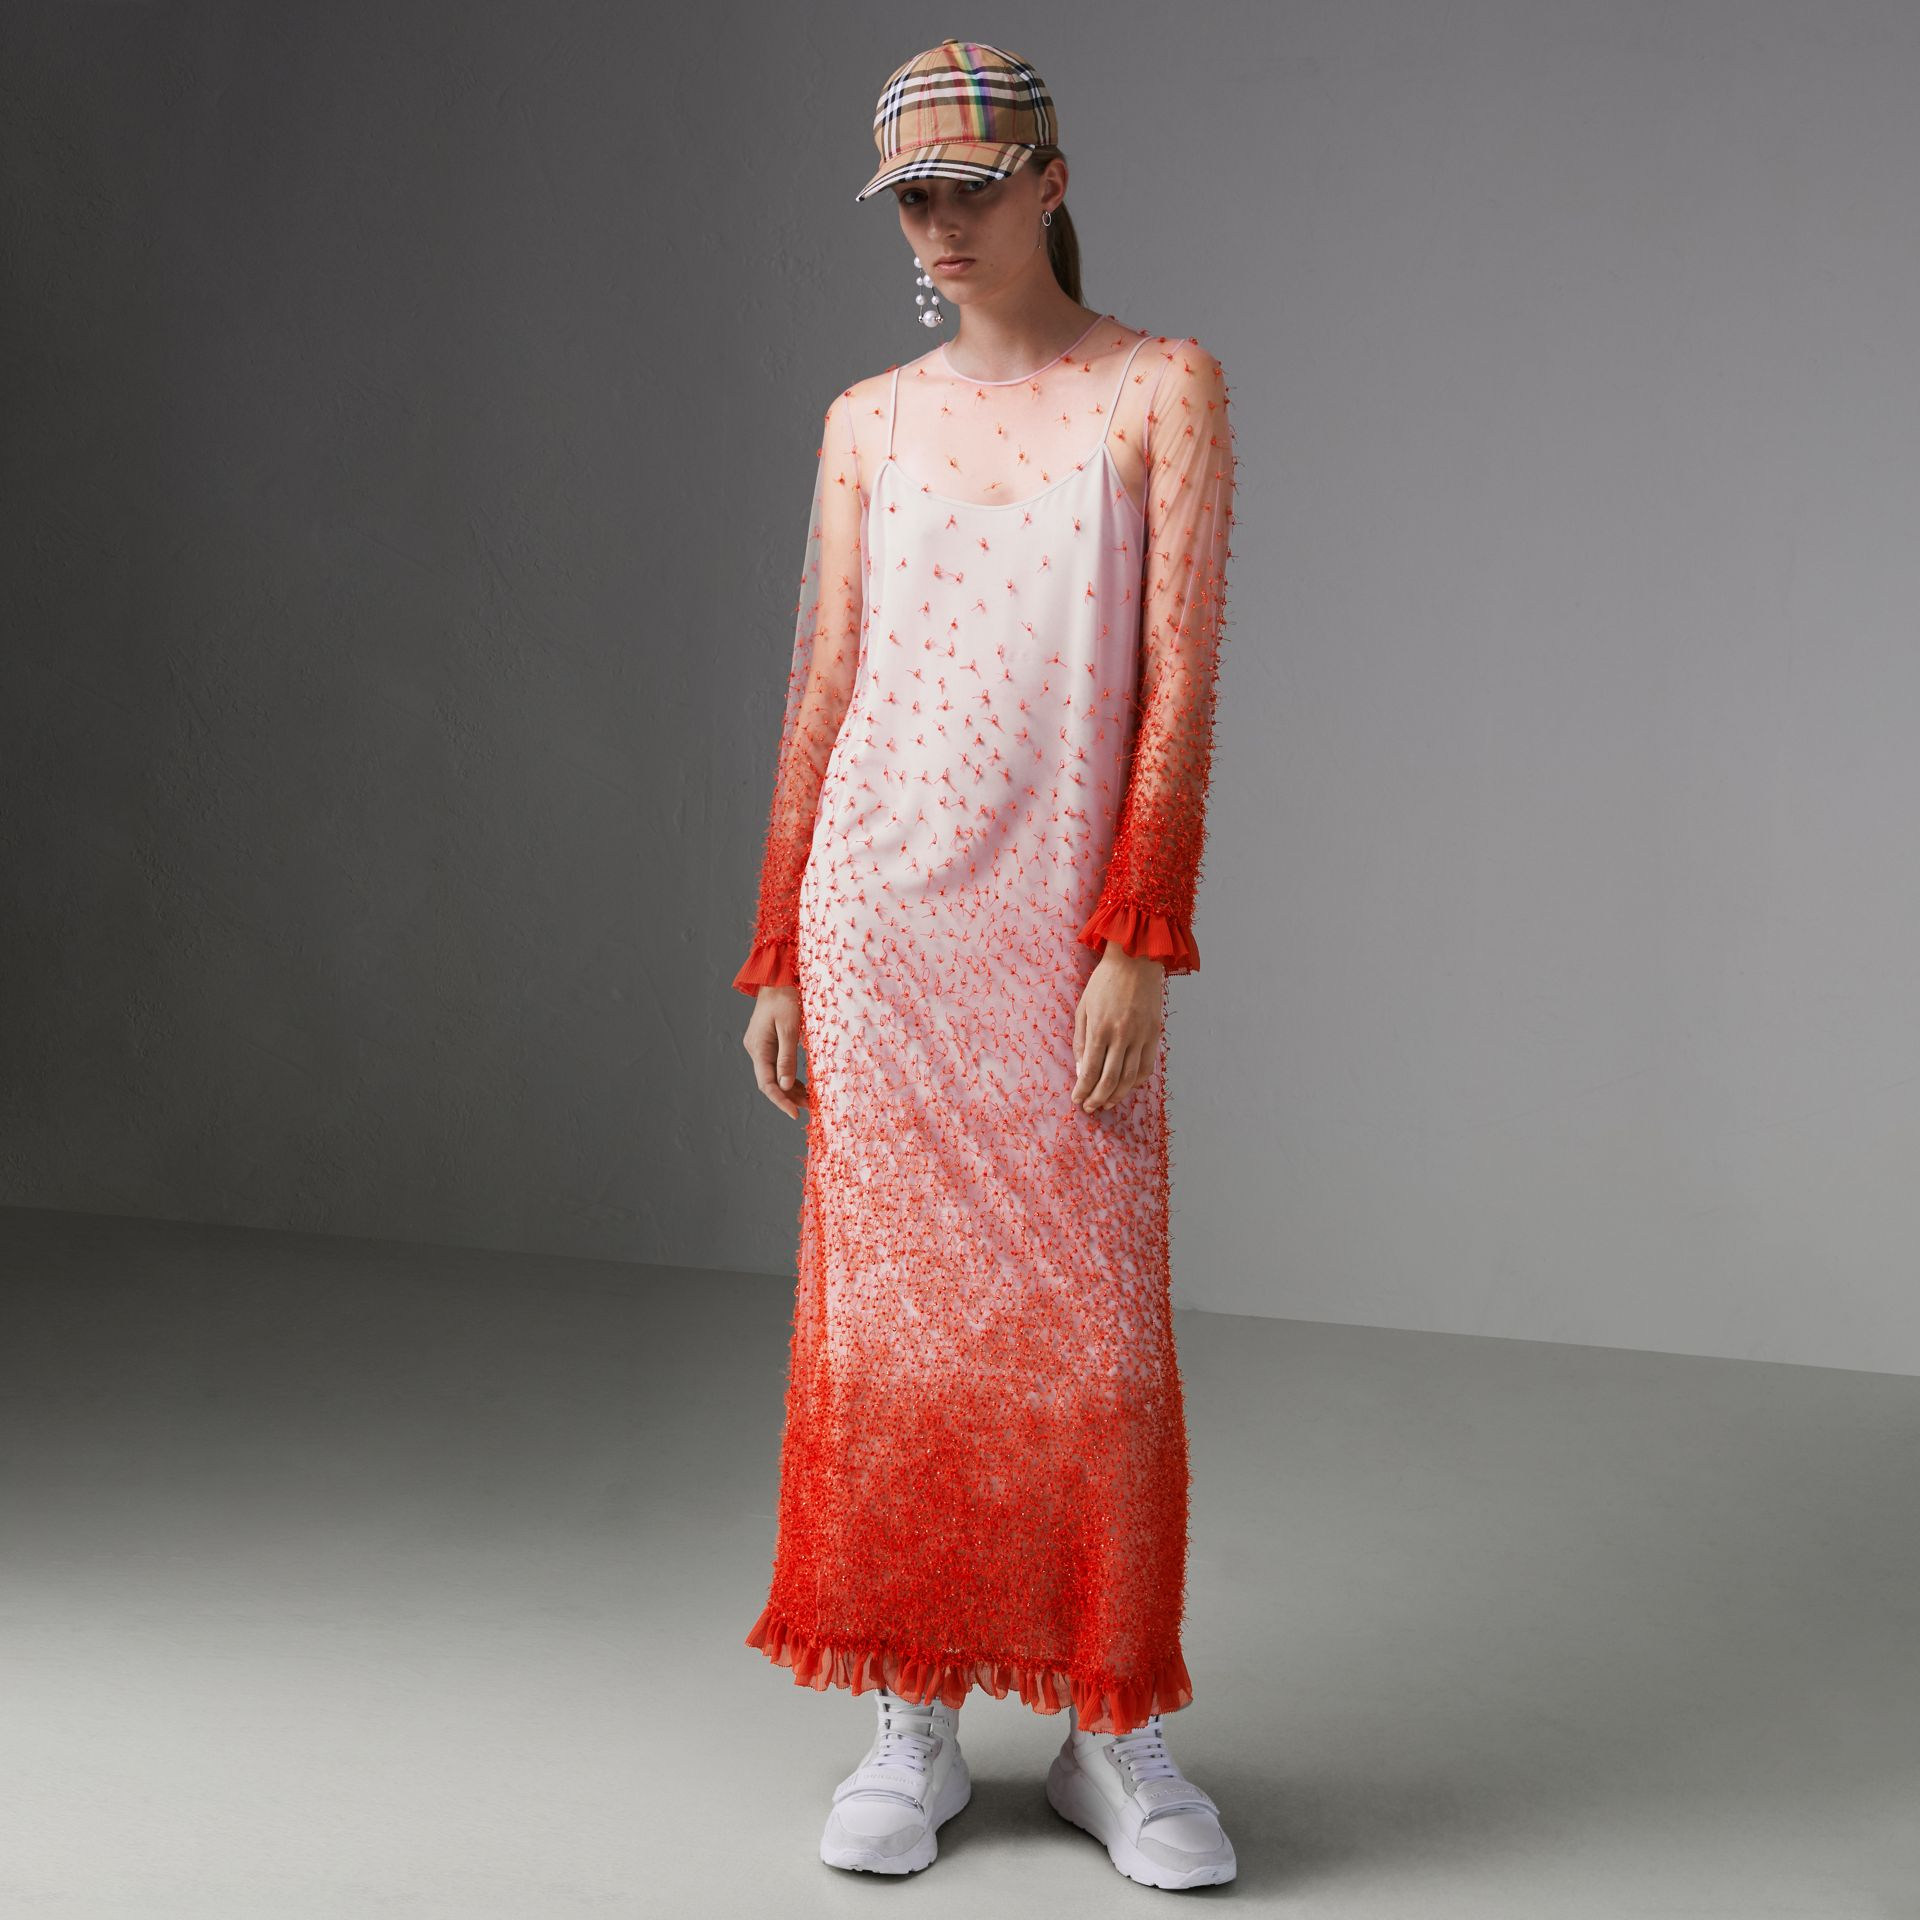 Dégradé Hand-beaded Crepon Dress in Coral - Women | Burberry United Kingdom - gallery image 5